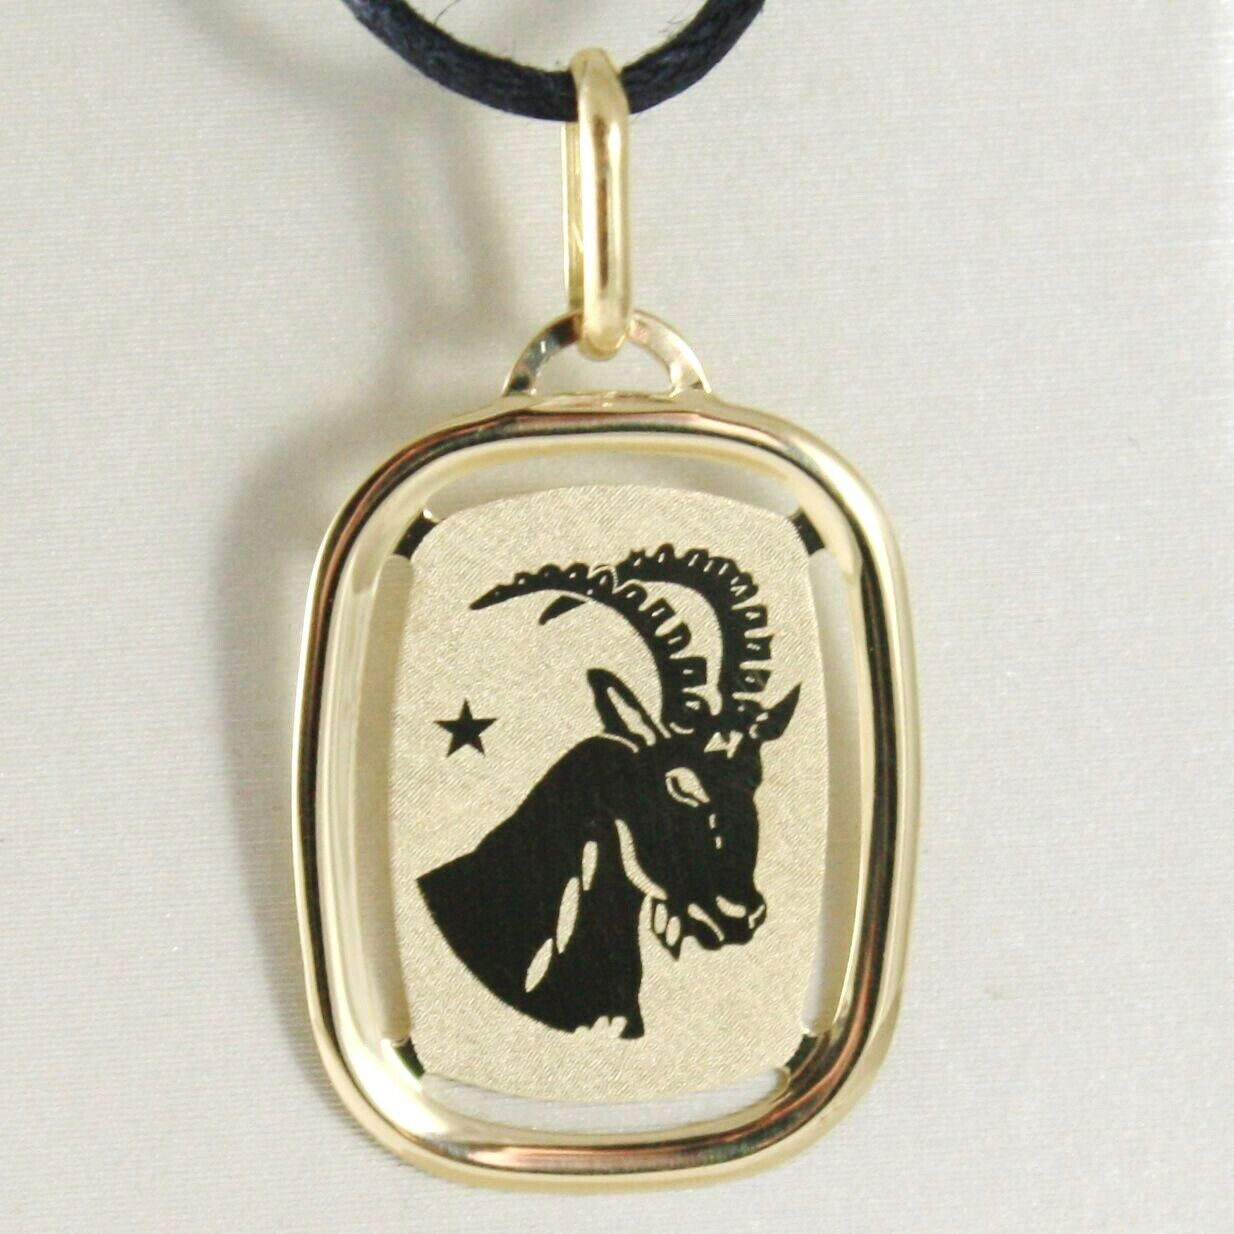 SOLID 18K YELLOW GOLD CAPRICORN ZODIAC SIGN MEDAL PENDANT ZODIACAL MADE IN ITALY